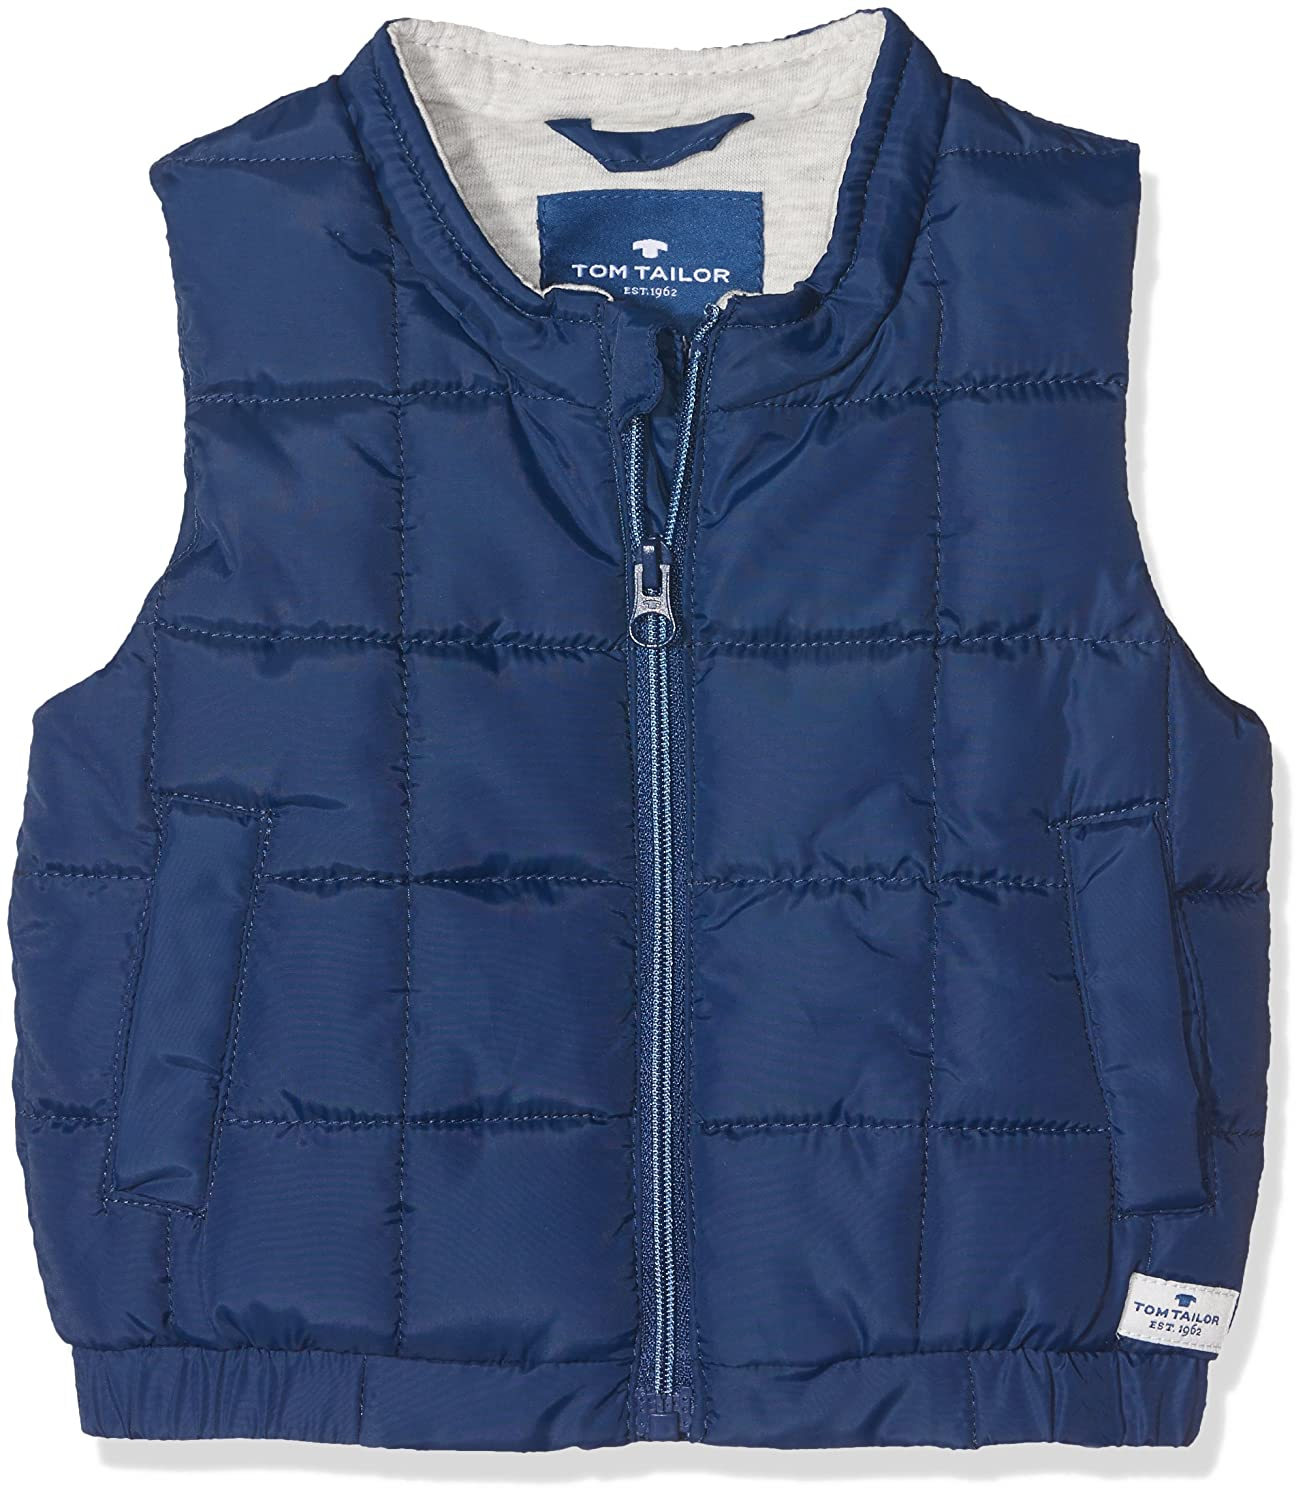 Gilet Mixte b/éb/é TOM TAILOR Weste Uni S-Less Stand-up-coll